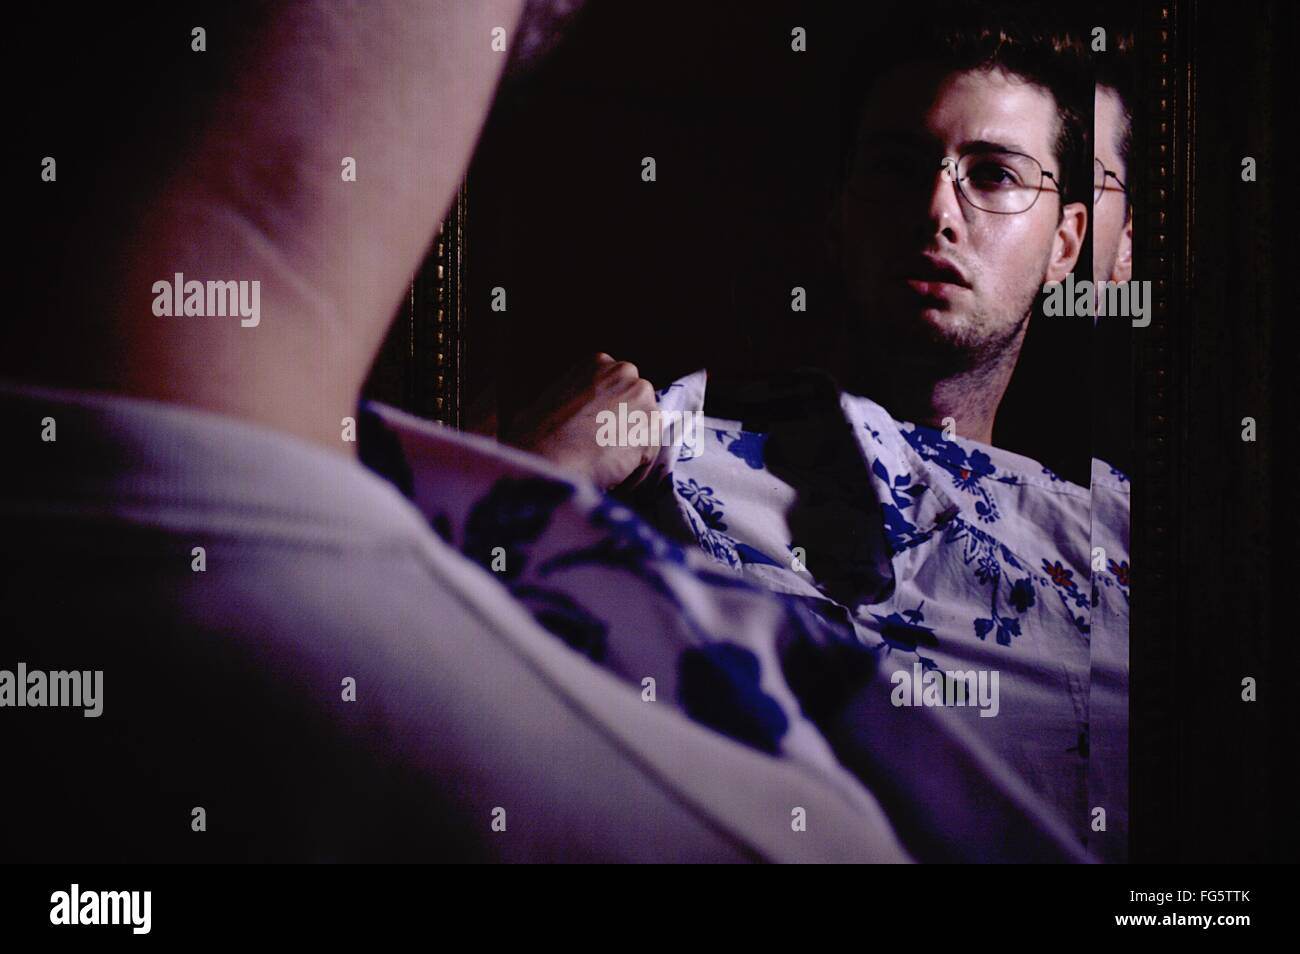 Reflection Of Man Trying Shirt In Mirror - Stock Image